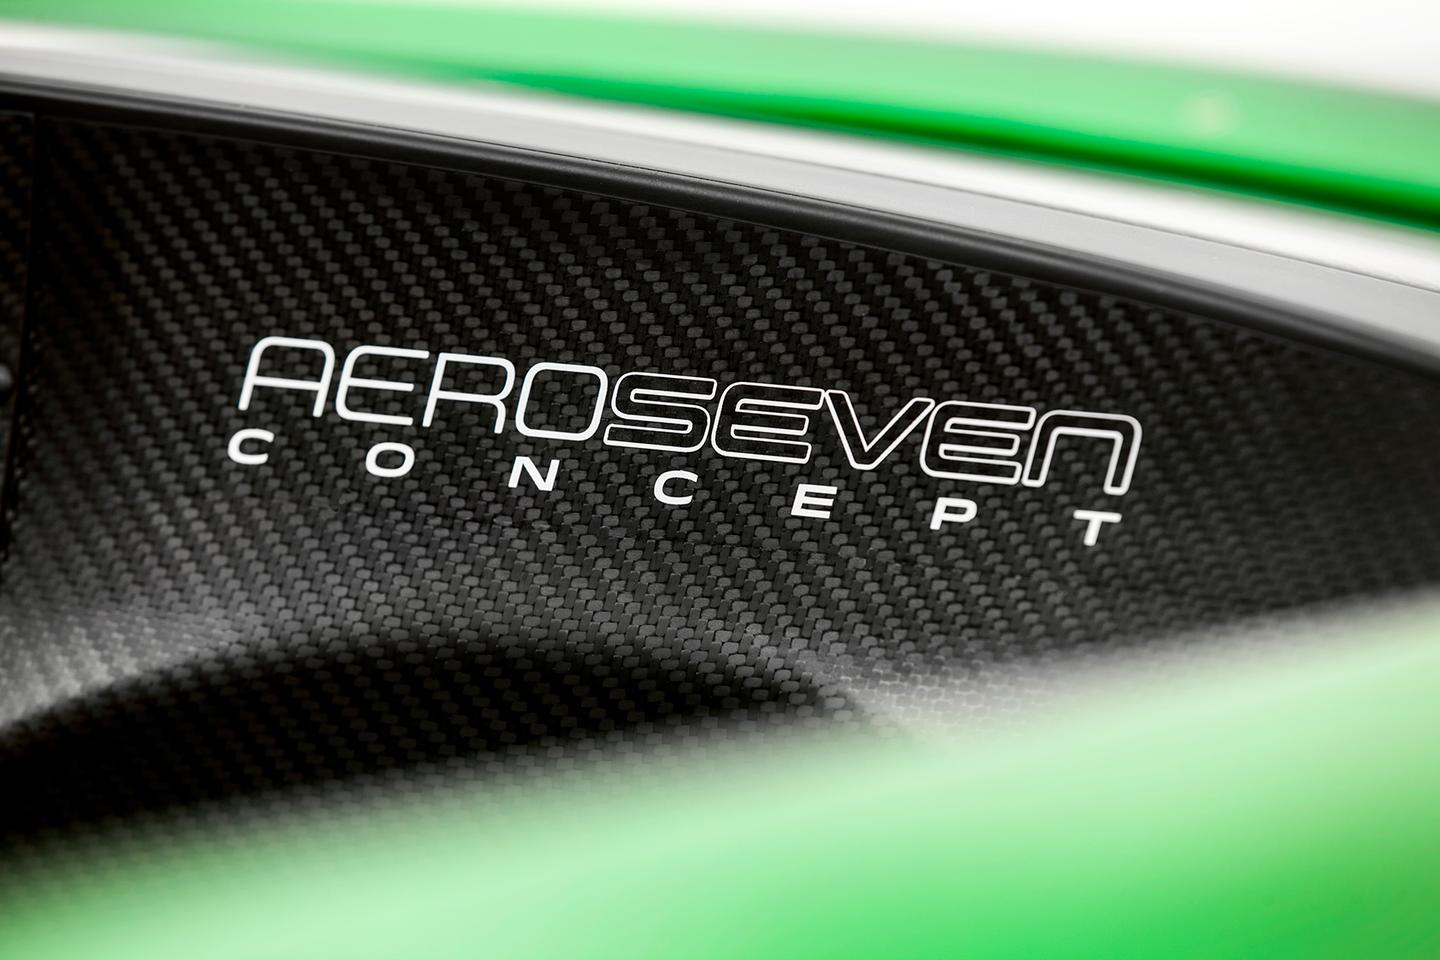 The Caterham AeroSeven Concept goes into production next year